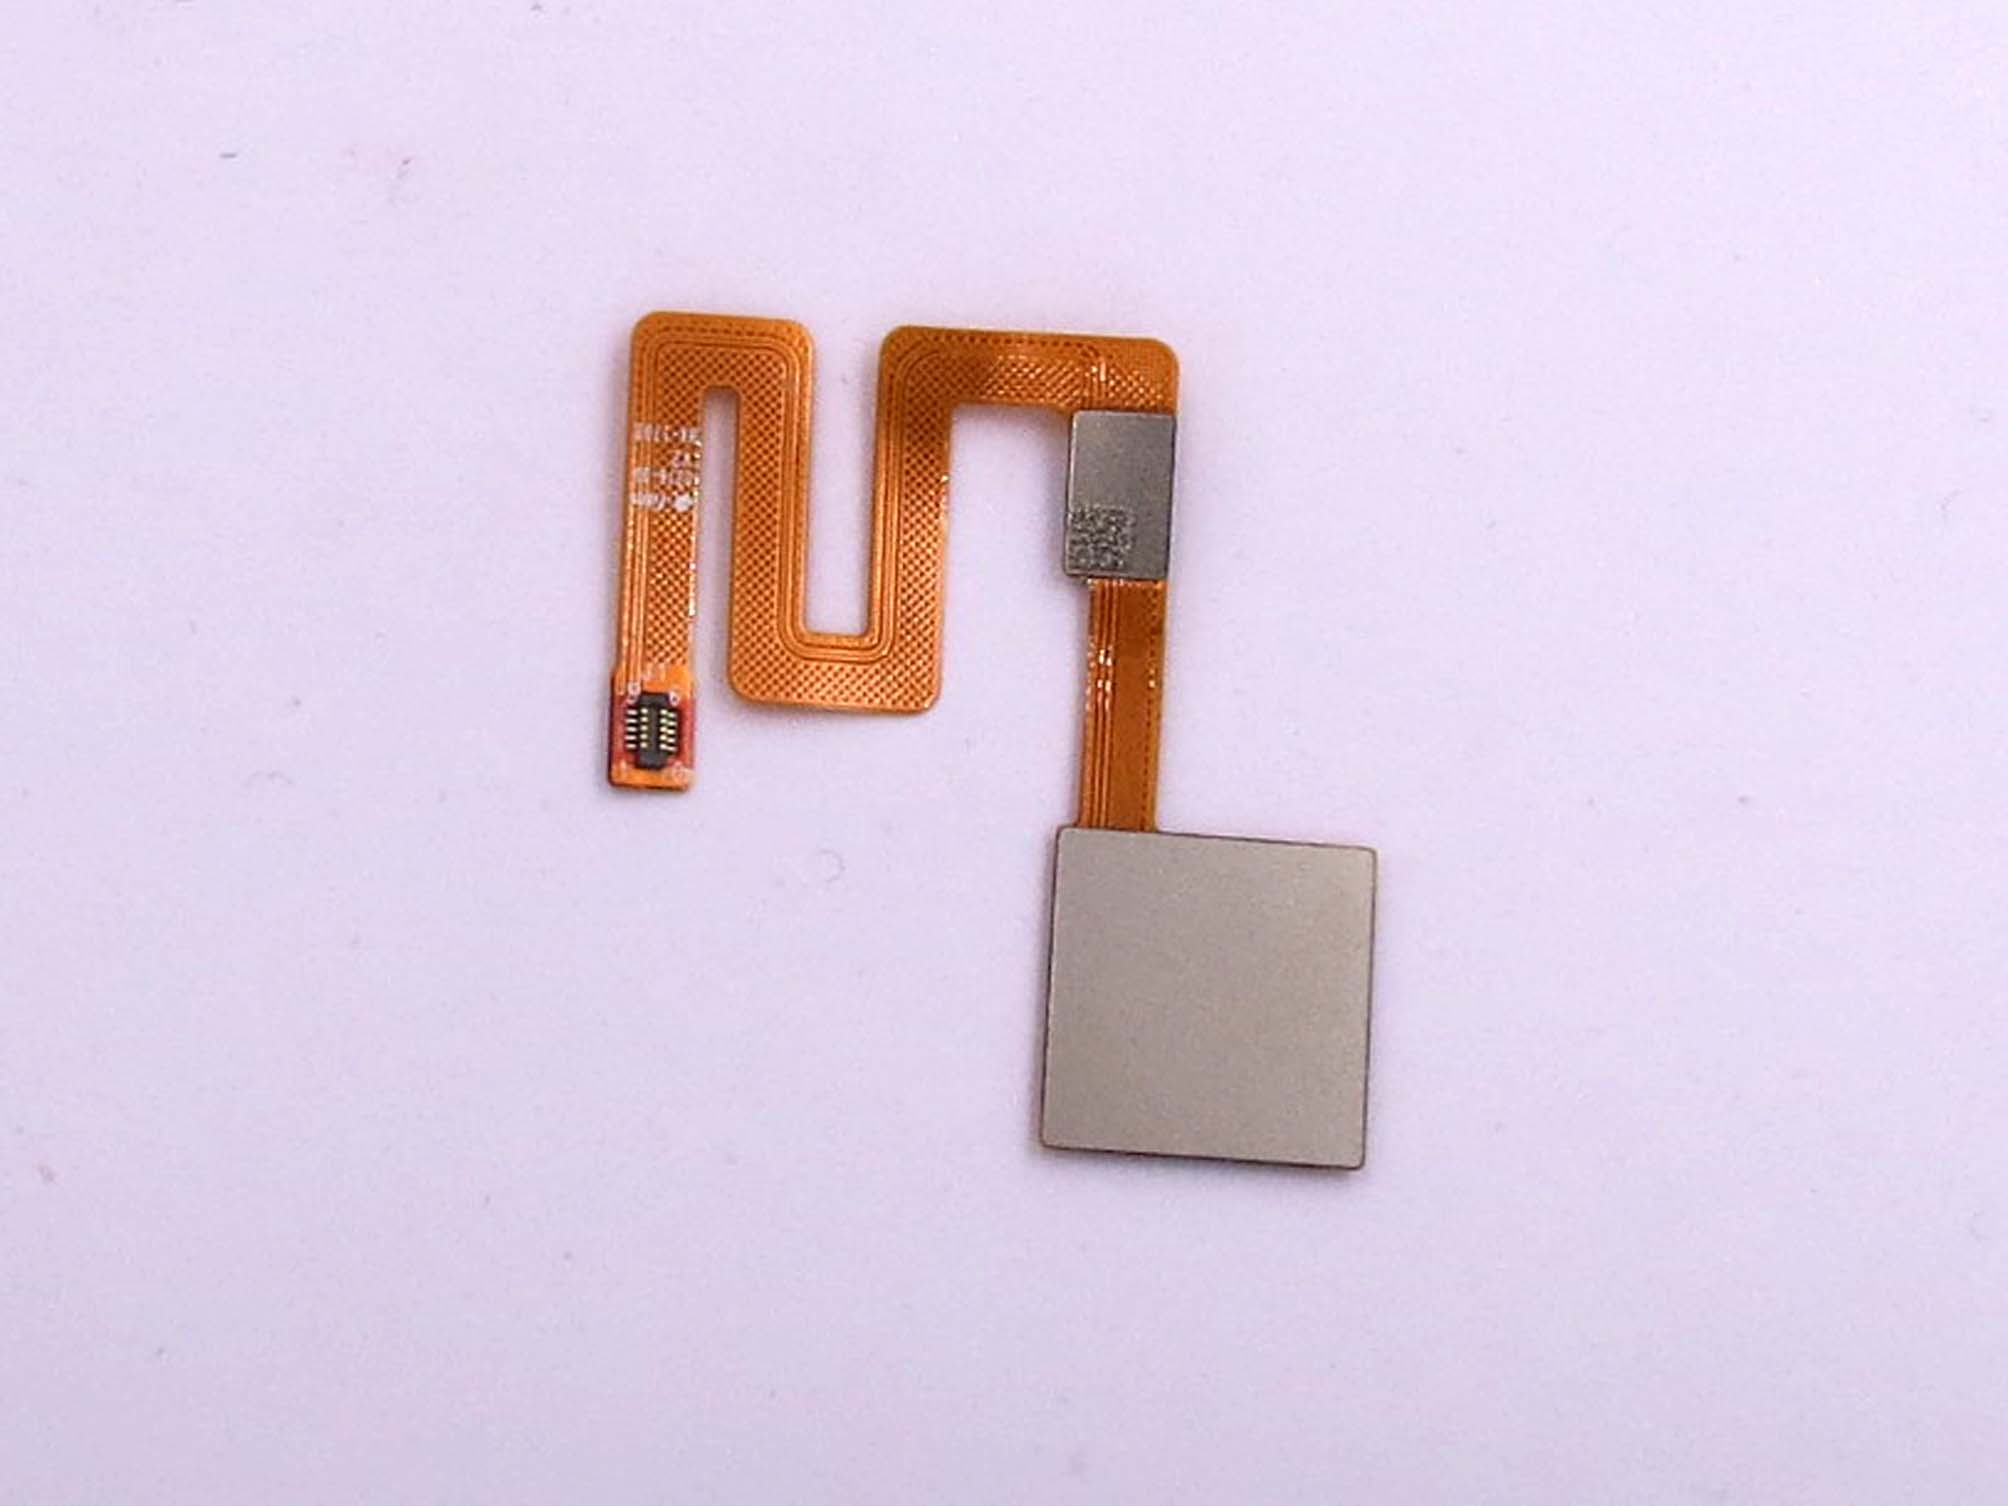 Original MTK version Fingerprint sensor flex cable for Redmi Note 4 - Silver